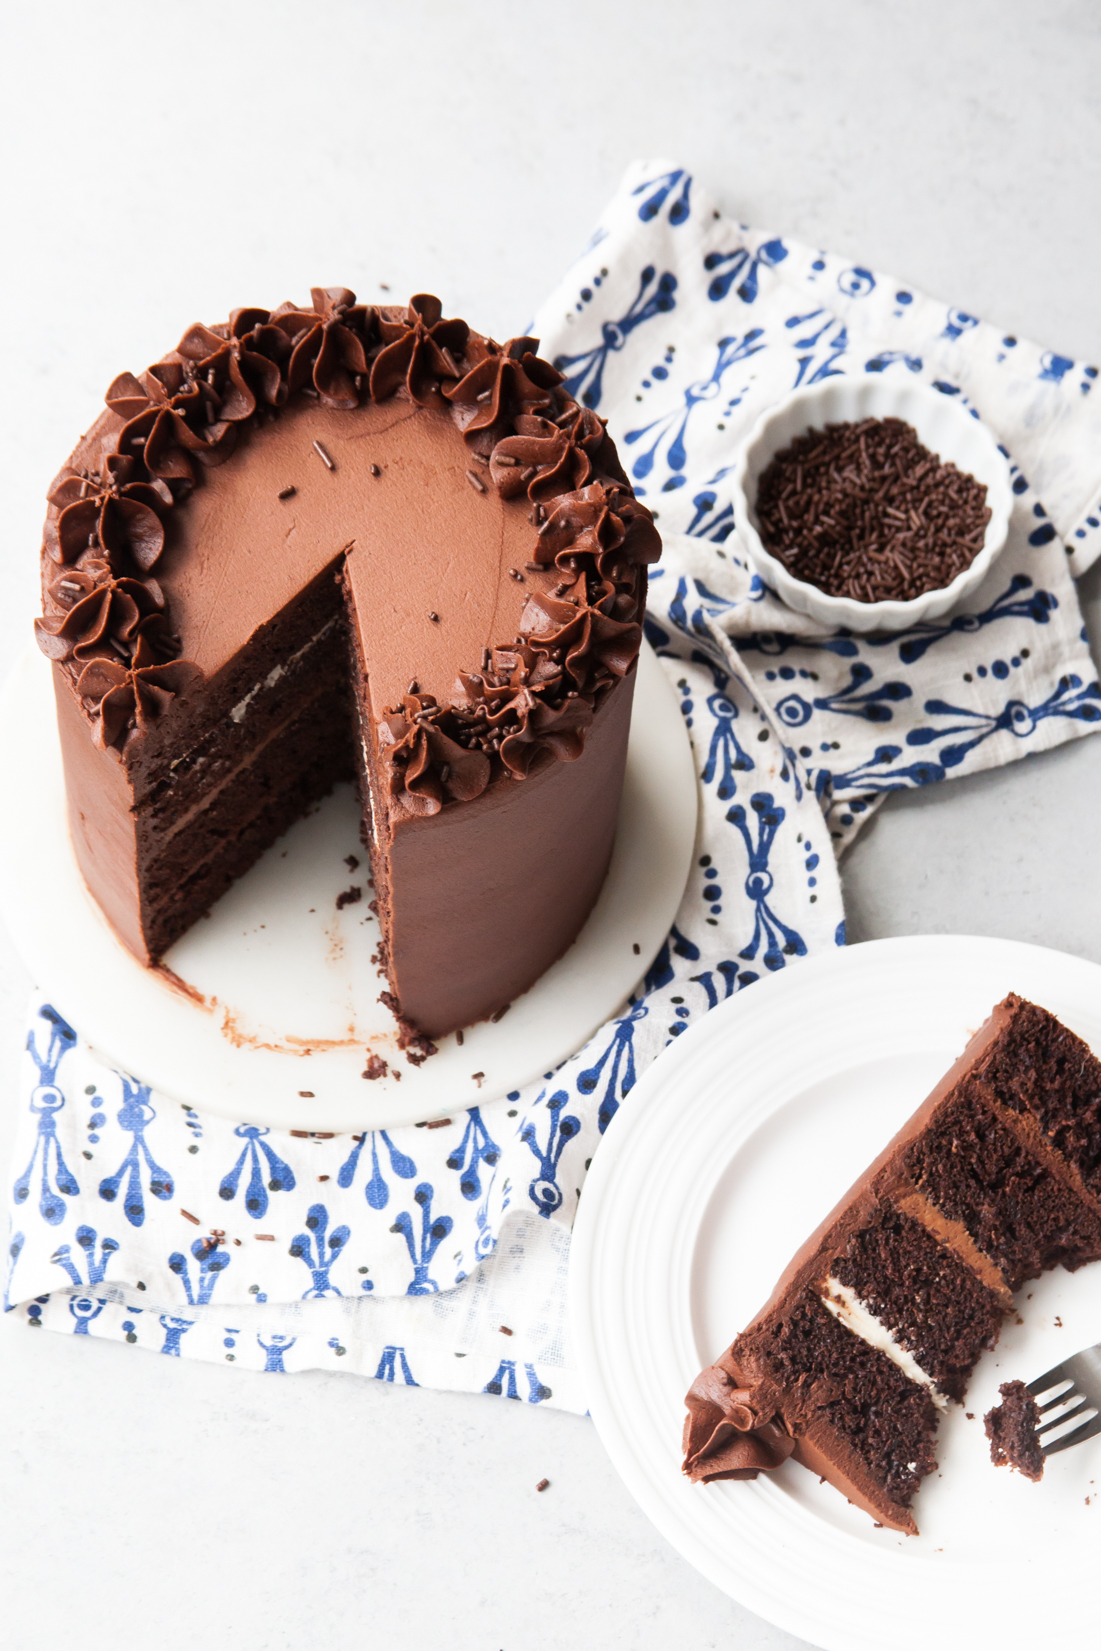 Chocolate Fudge Layer Cake with ombré chocolate filling.